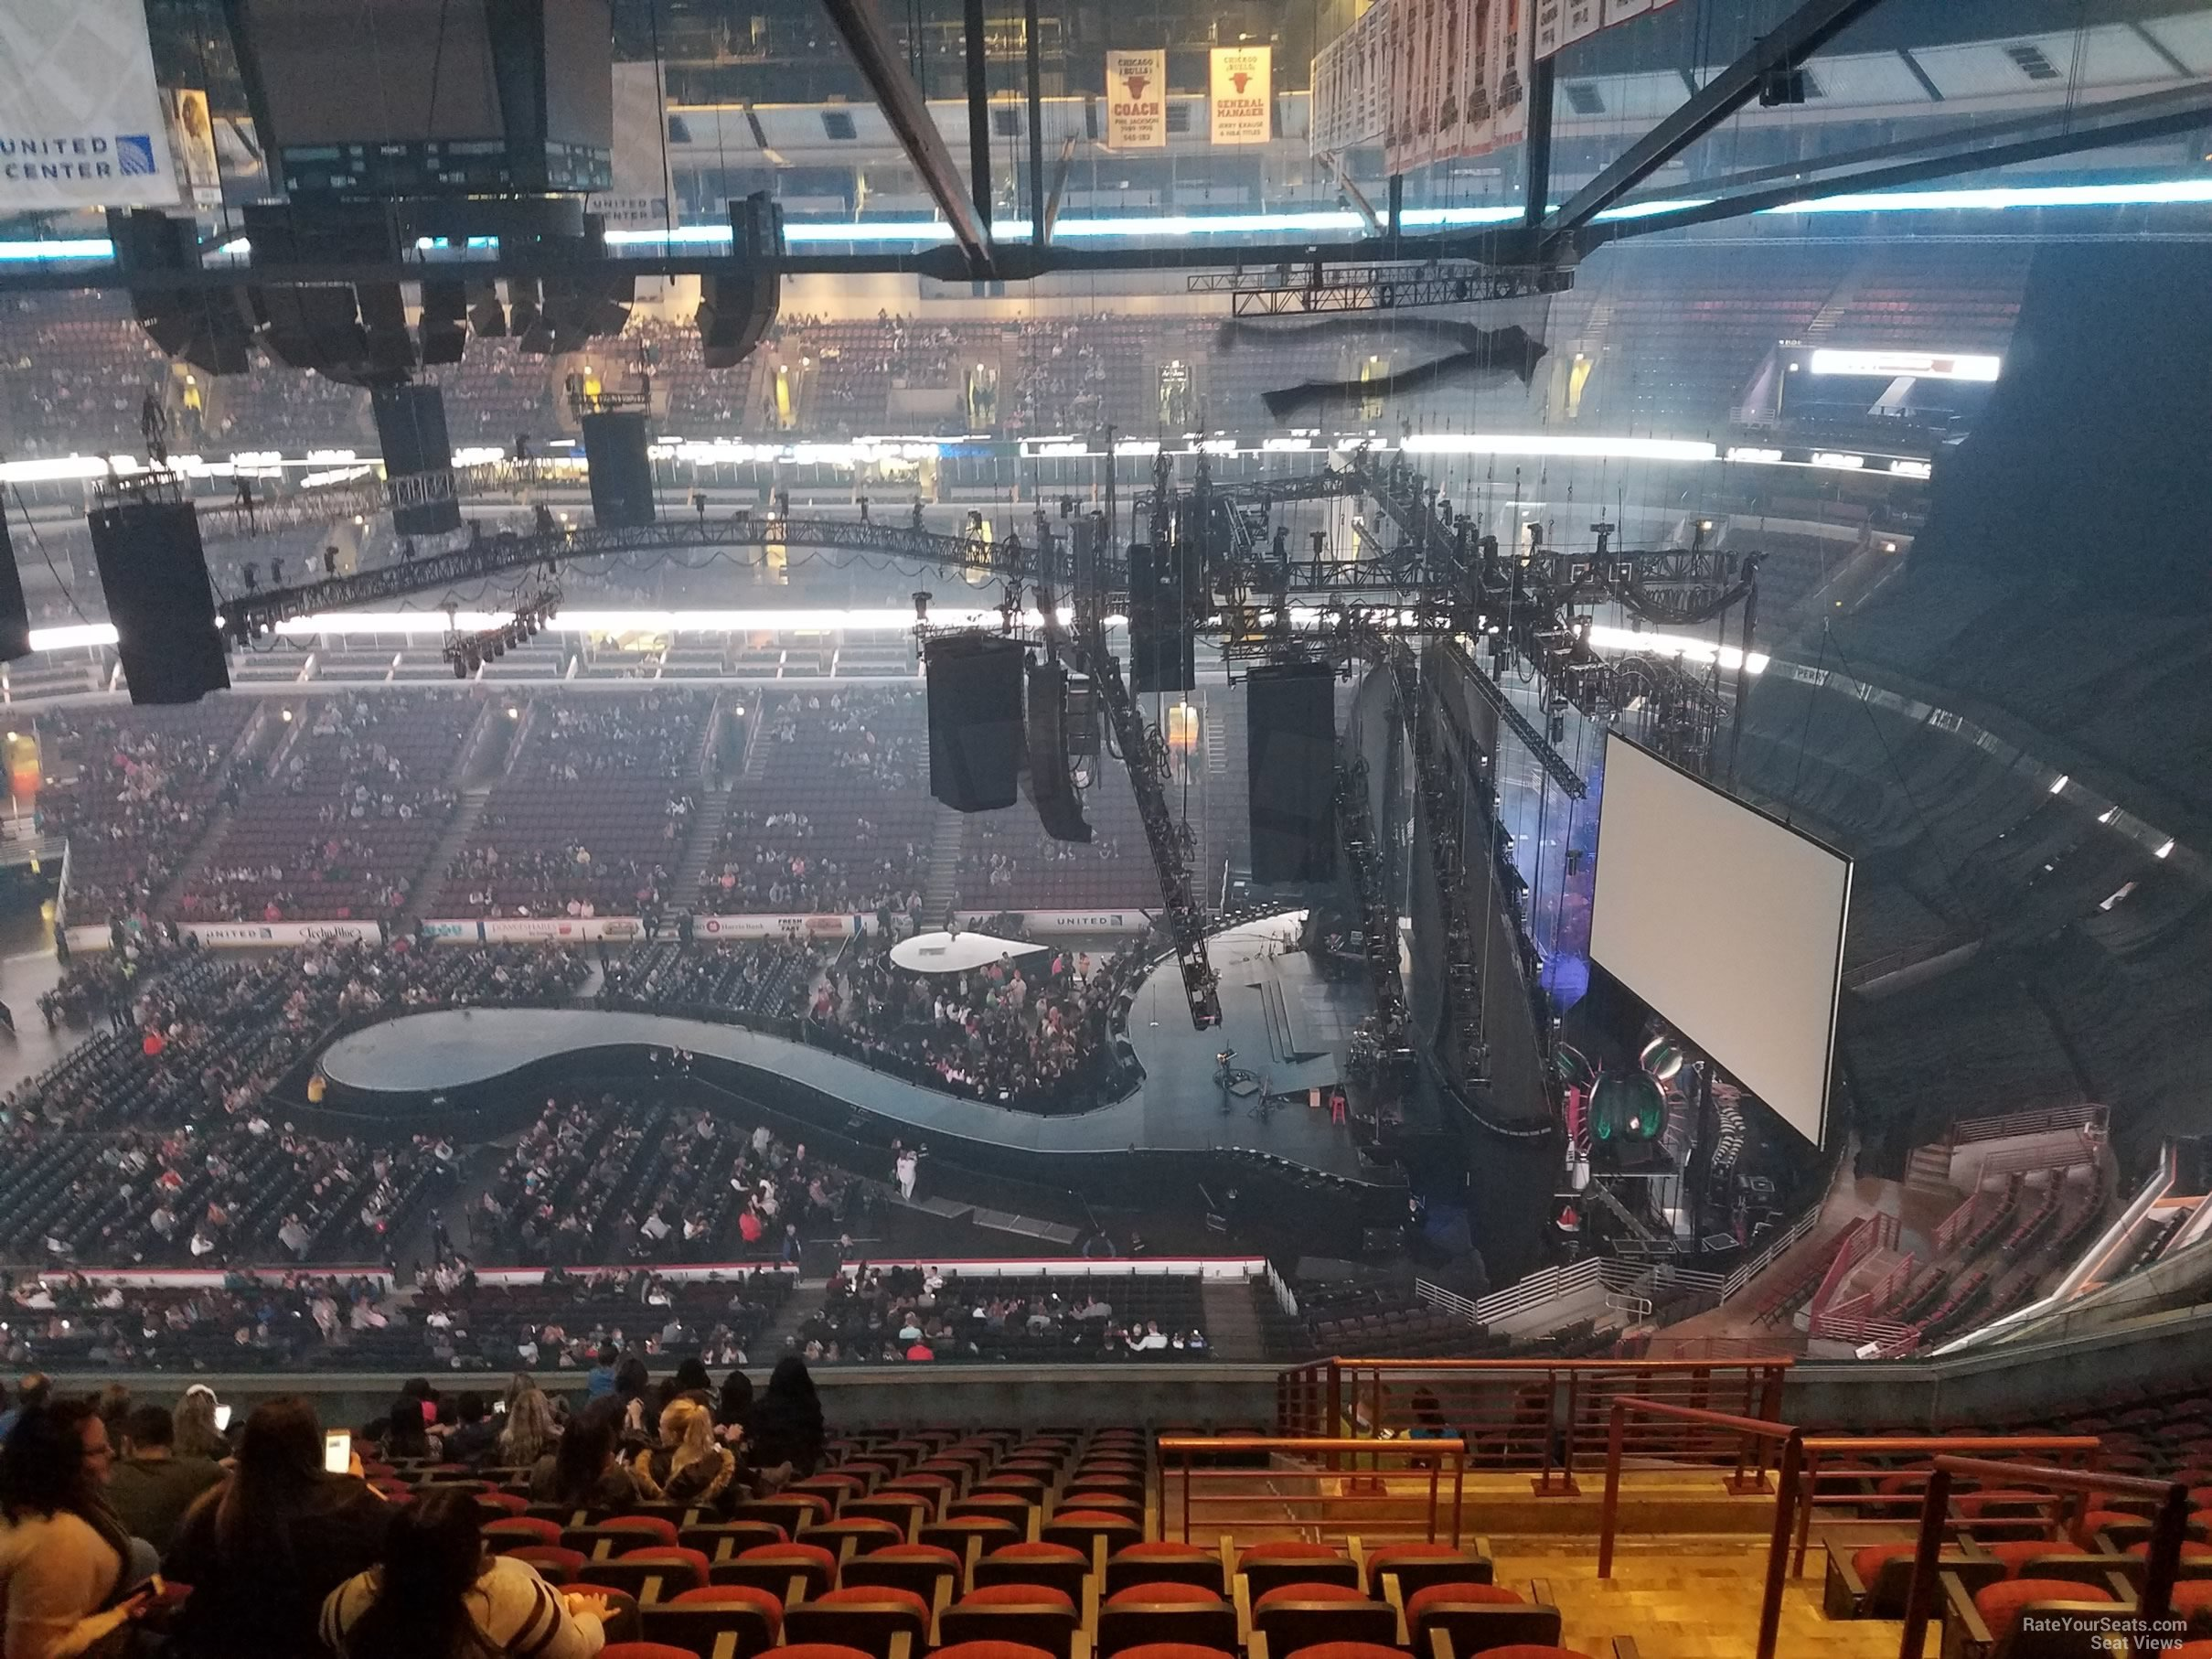 united center section 333 concert seating rateyourseats com